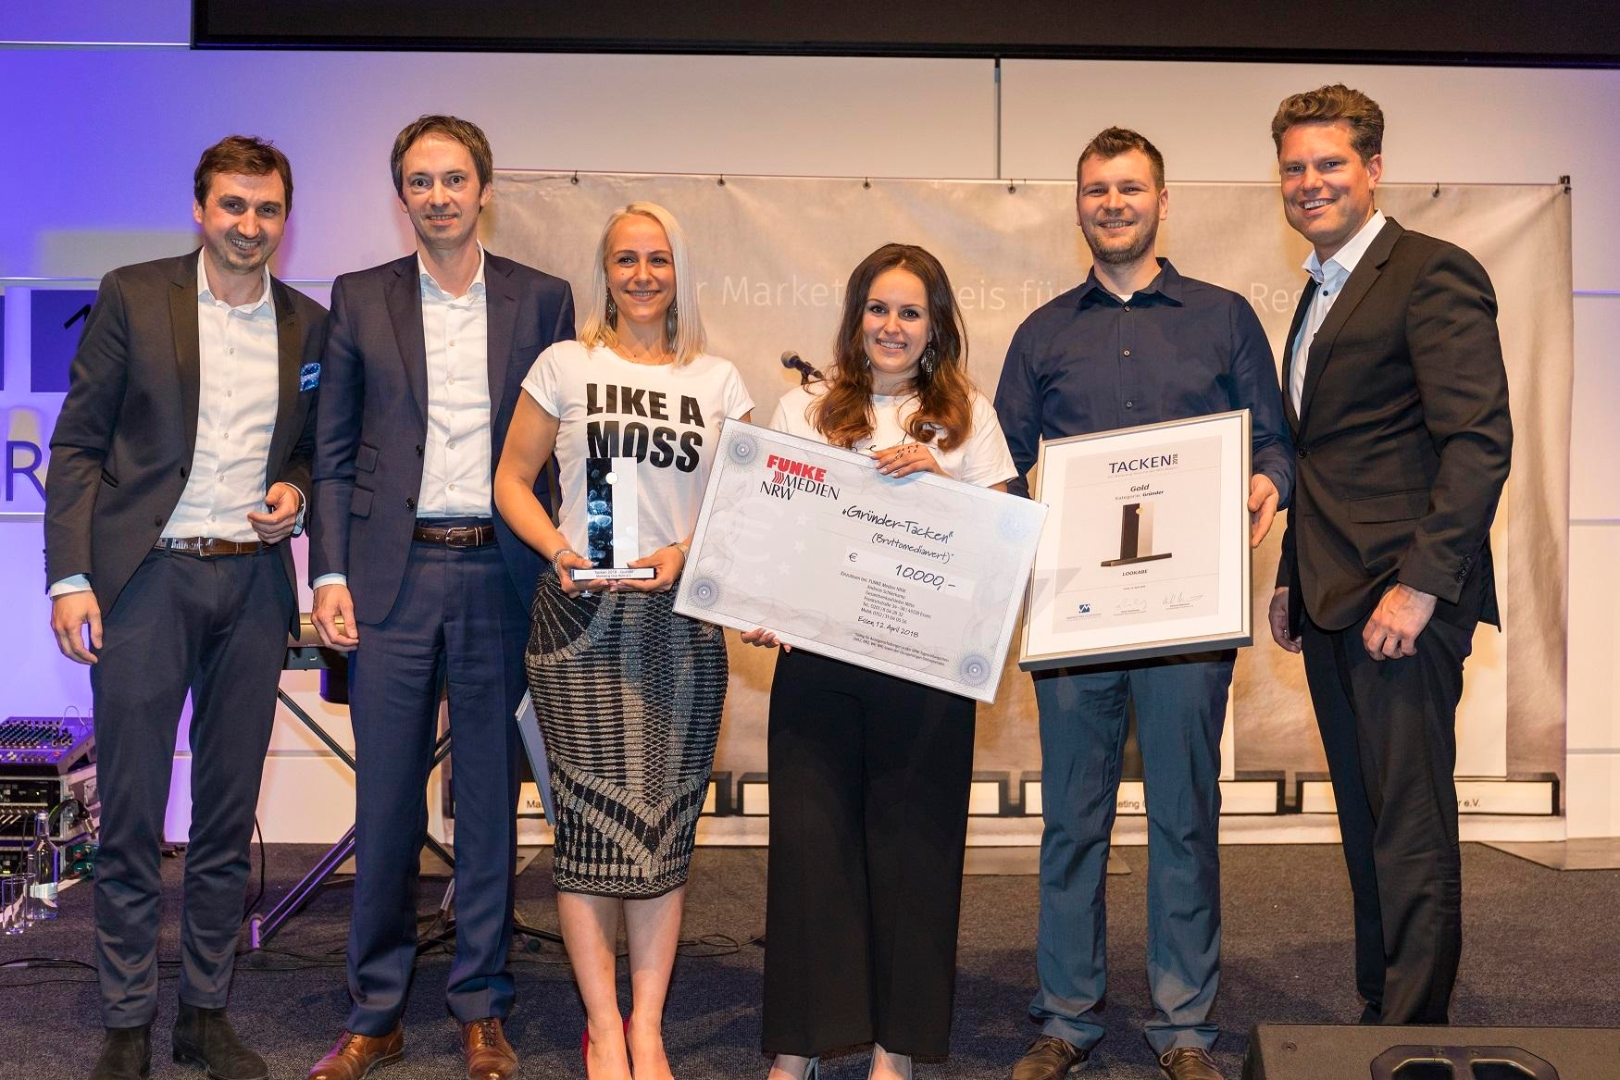 Richard Röhrhoff (Marketing Club Ruhr), Matthias Körner (Funke Medien NRW), Mariana Ilic, Melani Ilic, Marvin Lindemann (alle LOOKABE), Hans Piechatzek (Marketing Club Ruhr). FOTO: Martin Leclaire (Marketing Club Ruhr). Abdruck honorarfrei; um Belegexemplar wird gebeten